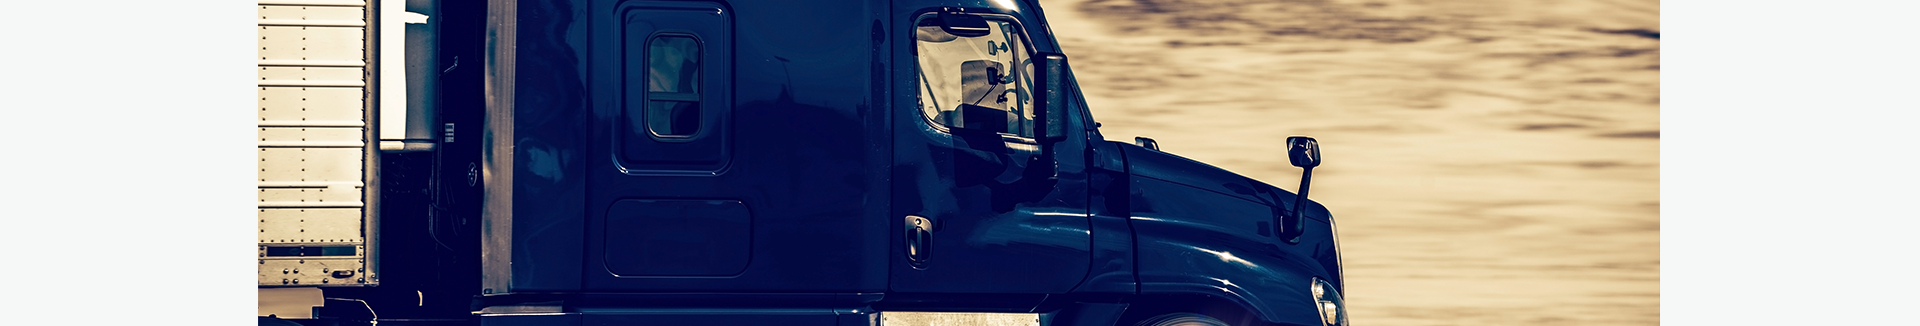 CARRIERS   Target Integrated Logistics